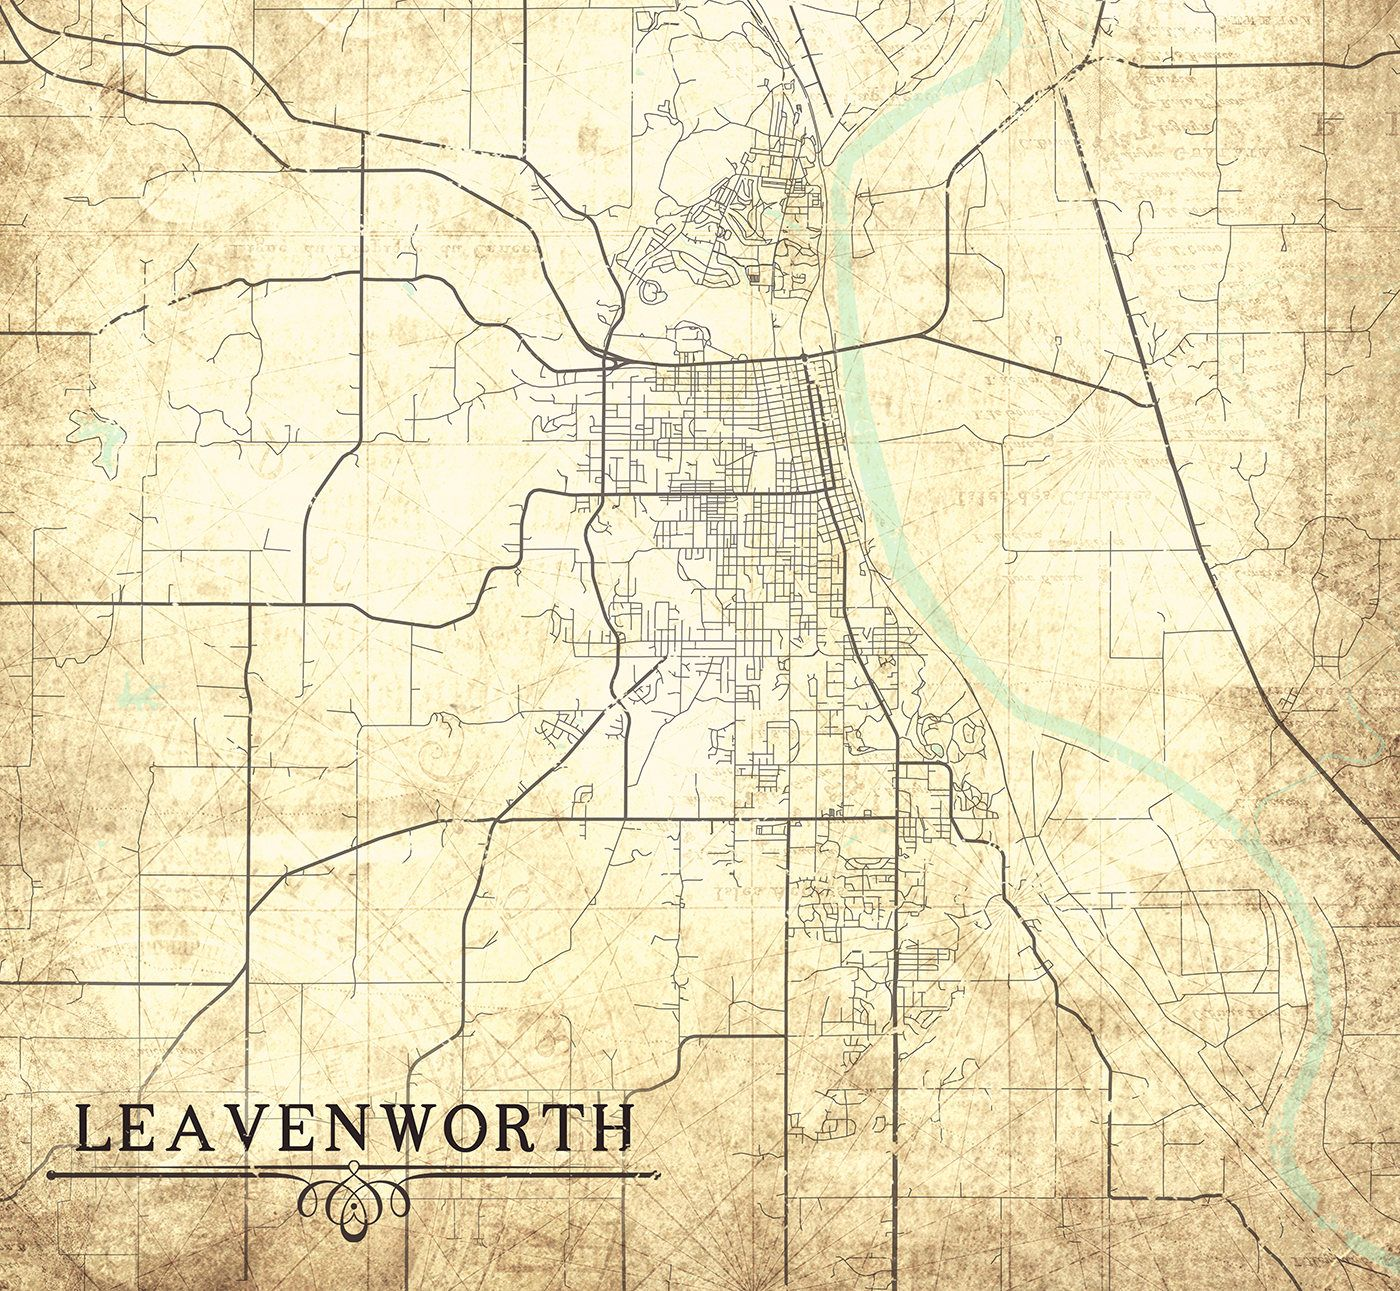 Leavenworth ks canvas print kansas ks vintage map gift home leavenworth ks canvas print kansas ks vintage map gift home decor city town plan vintage wall art map poster retro antique vintage wall art gumiabroncs